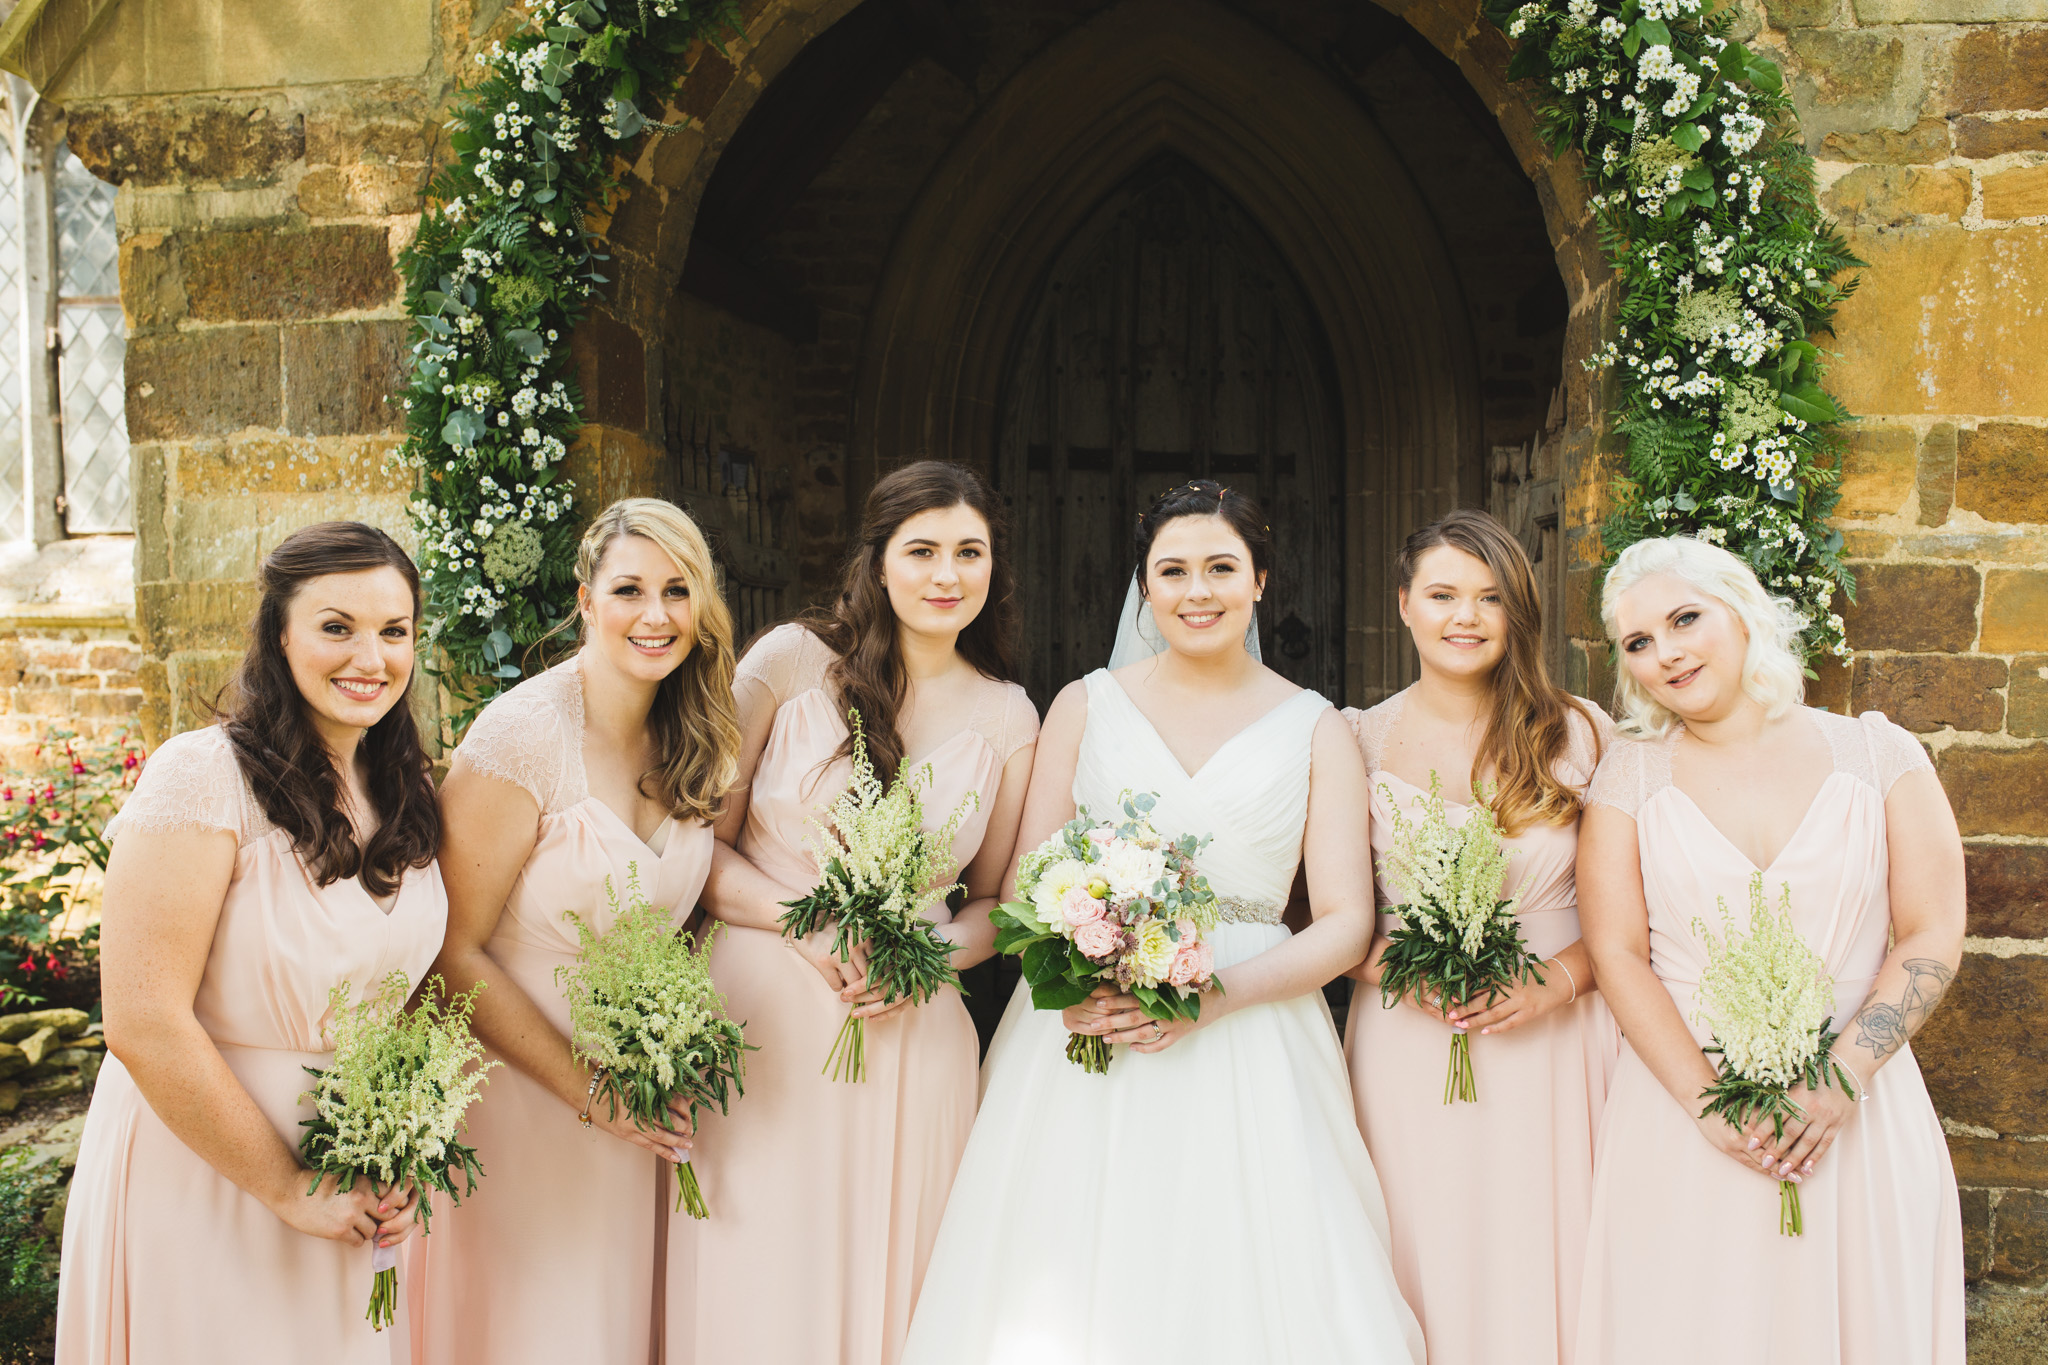 barns-at-hunsbury-hill-northampton-wedding-photography_web__1403__38A6934.jpg